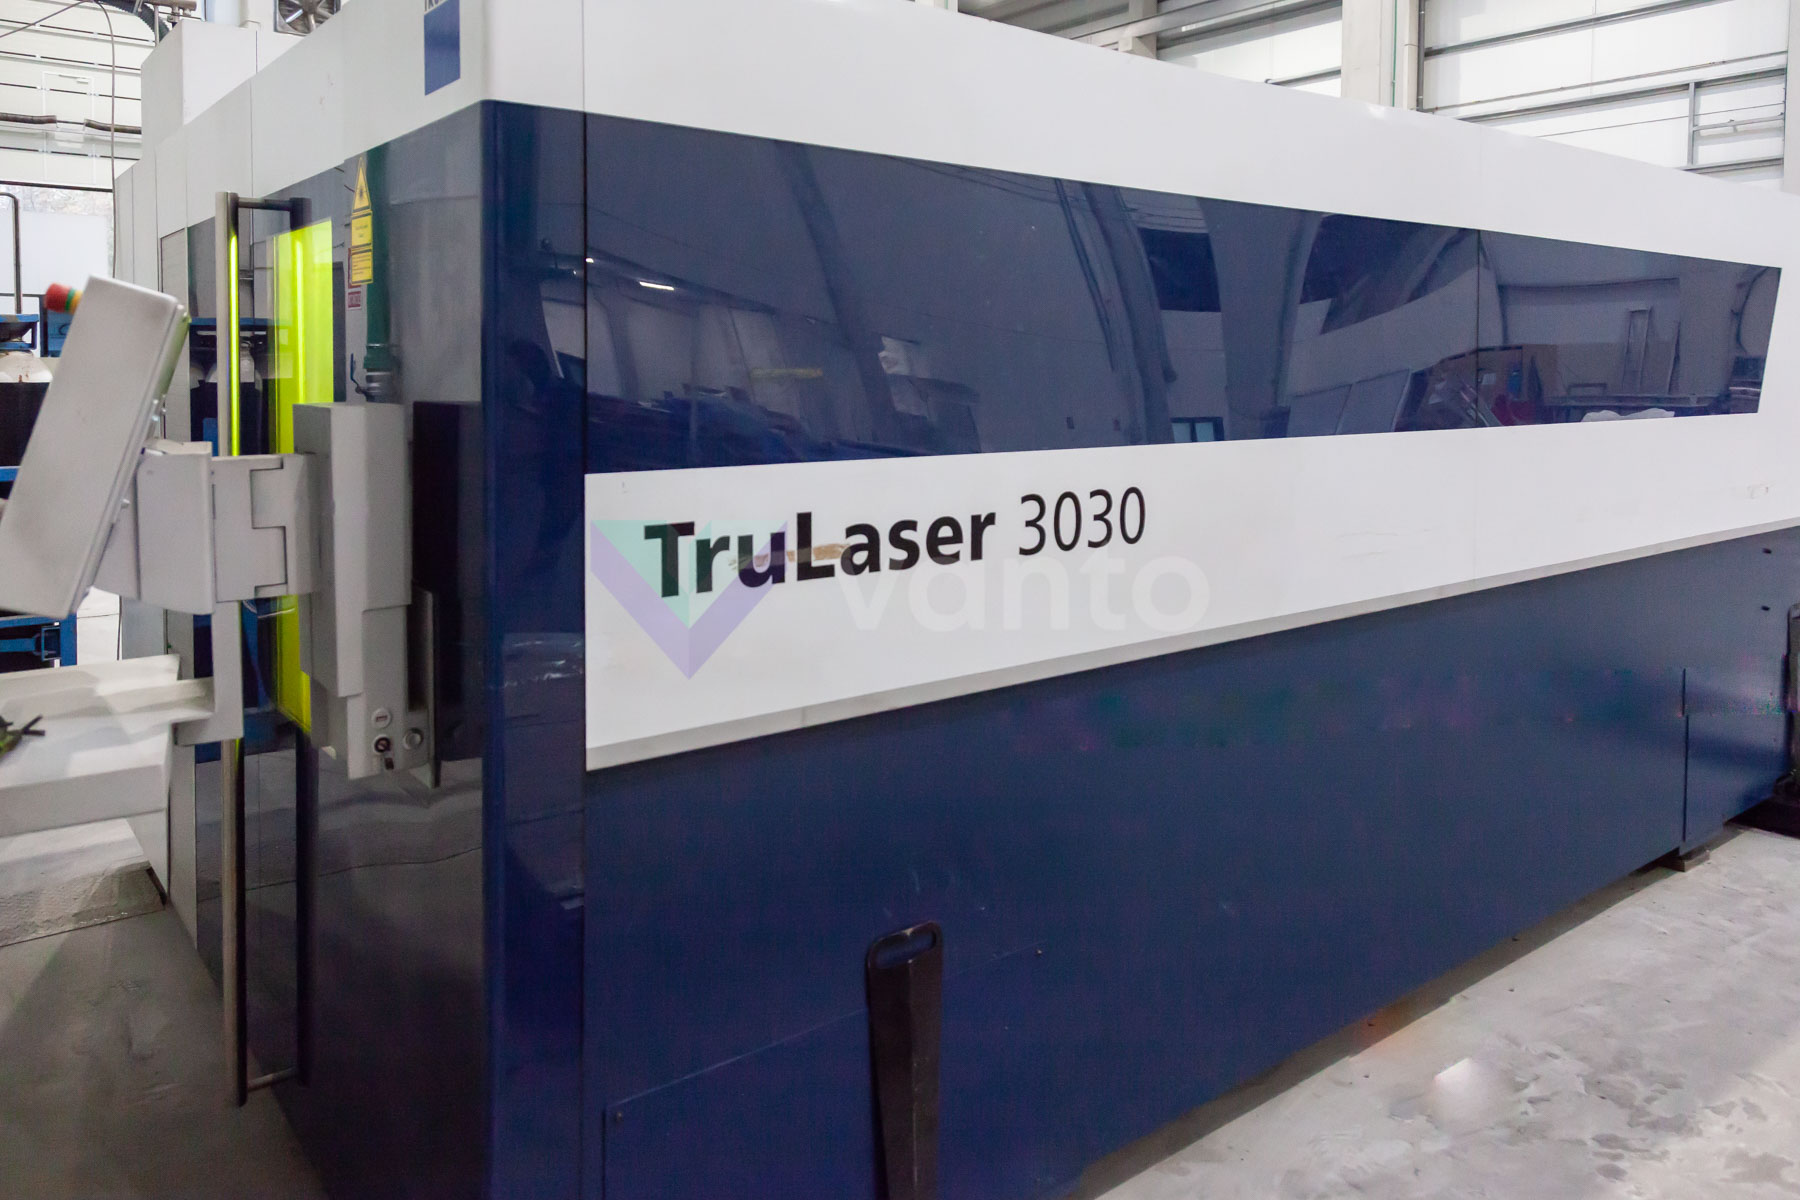 TRUMPF TruLaser 3030 Laser cutting machine (Fiber) (2015) id10141